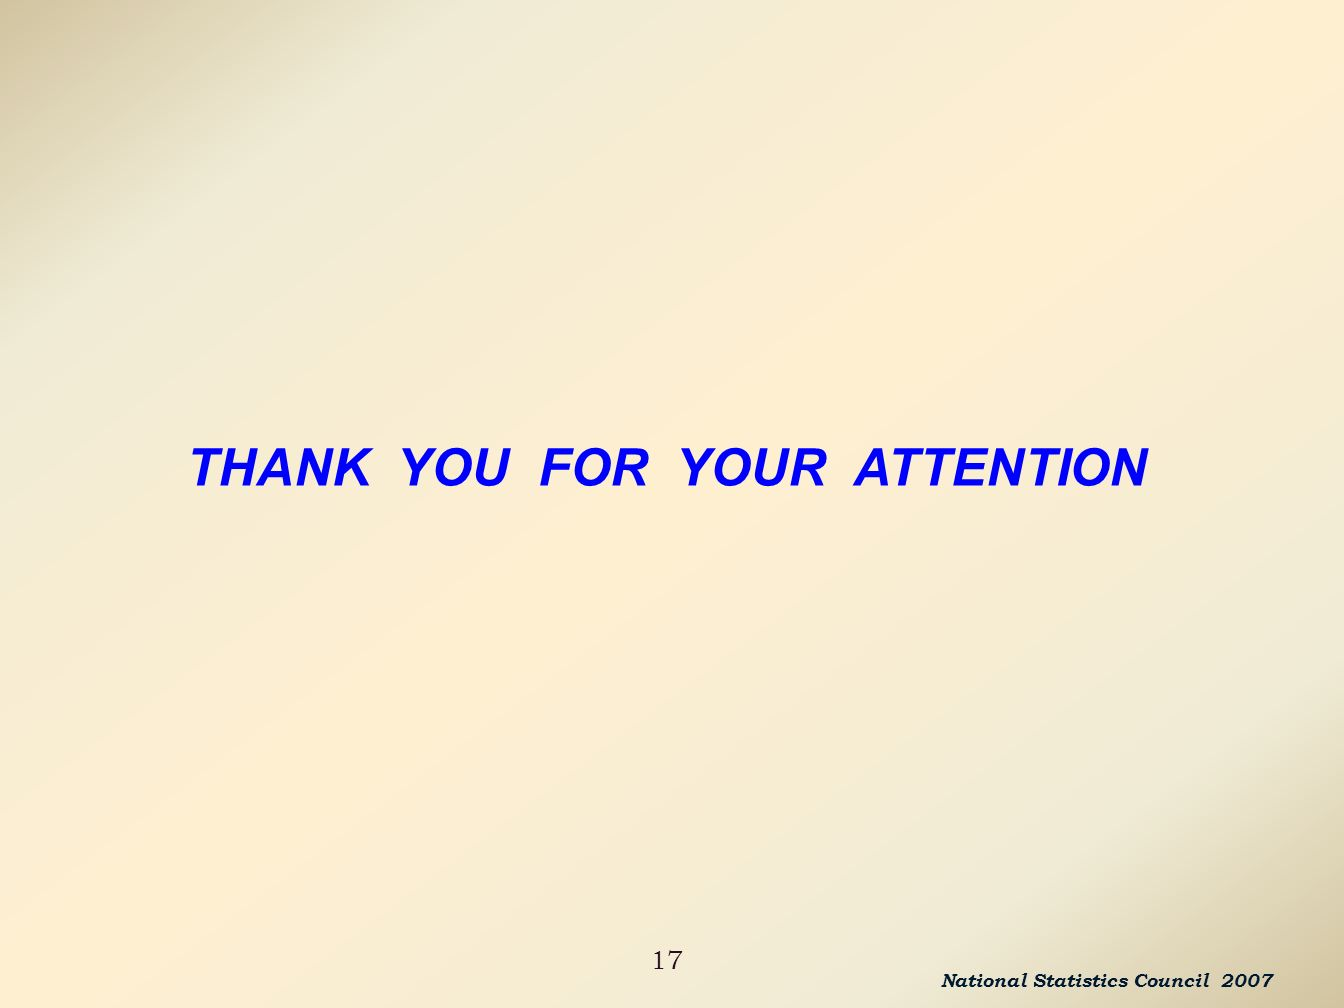 17 THANK YOU FOR YOUR ATTENTION National Statistics Council 2007